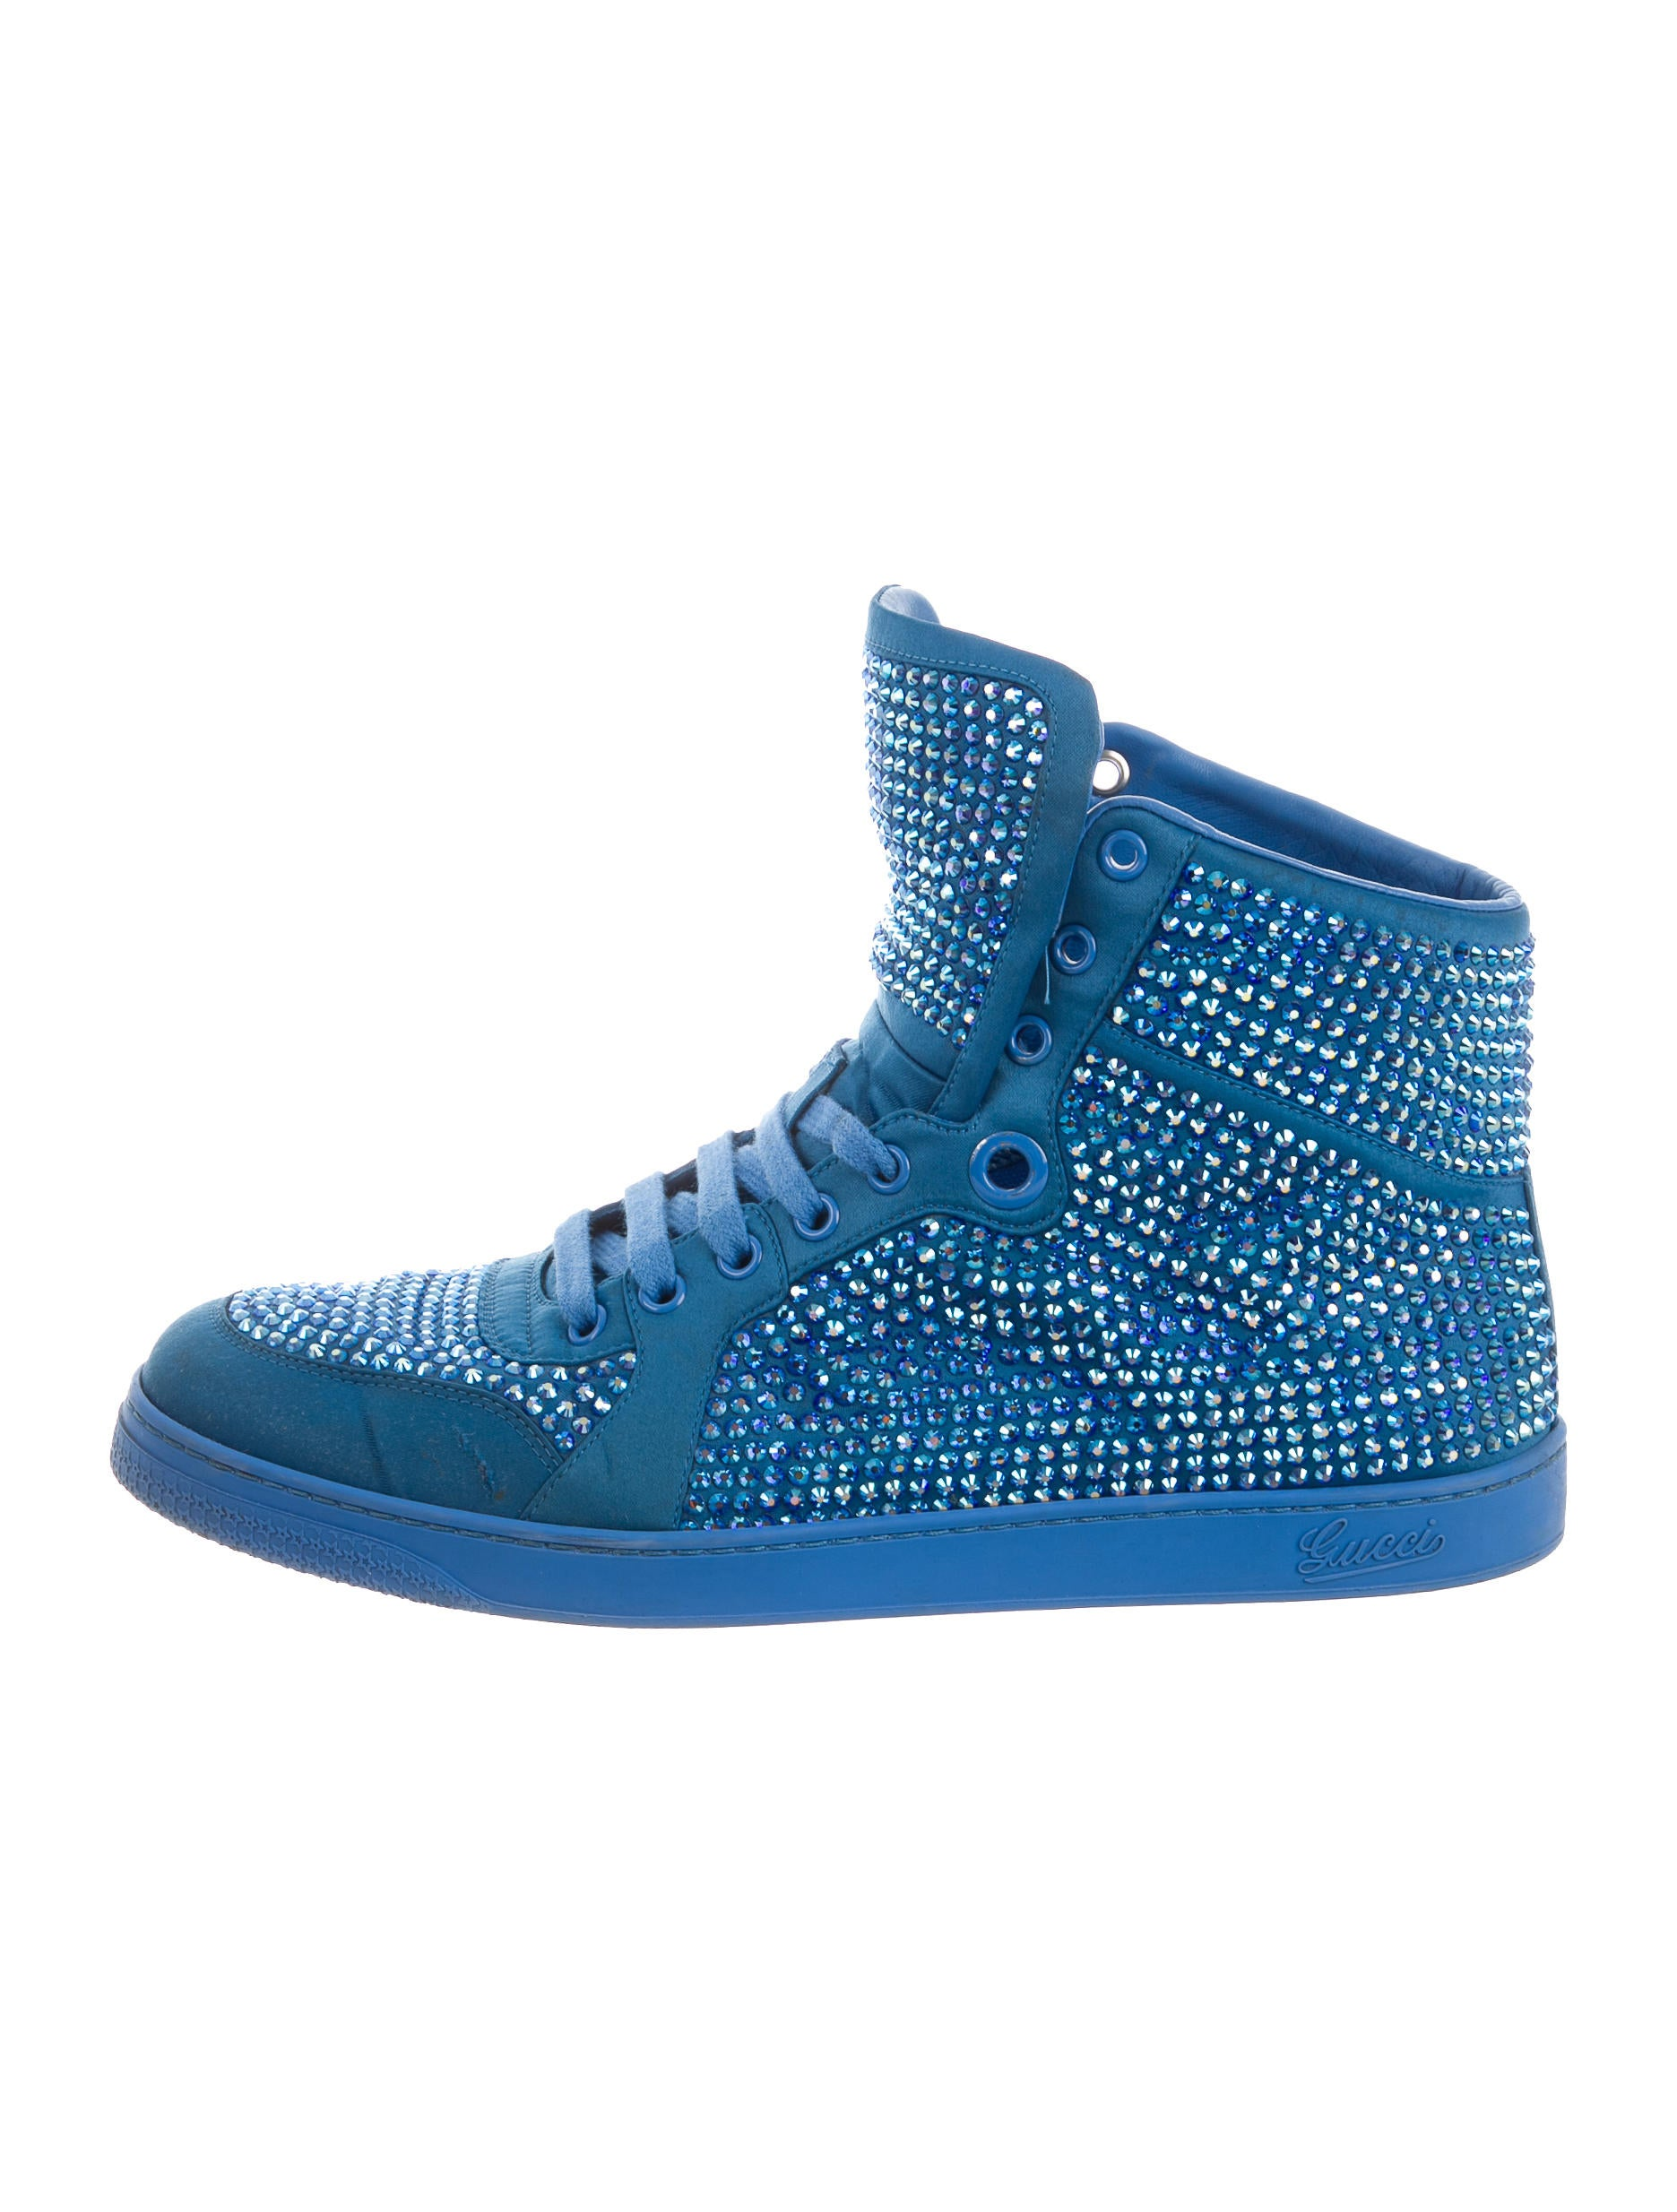 e41ef001628 Gucci Coda Crystal Embellished High-Top Sneakers - Shoes - GUC129274 ...